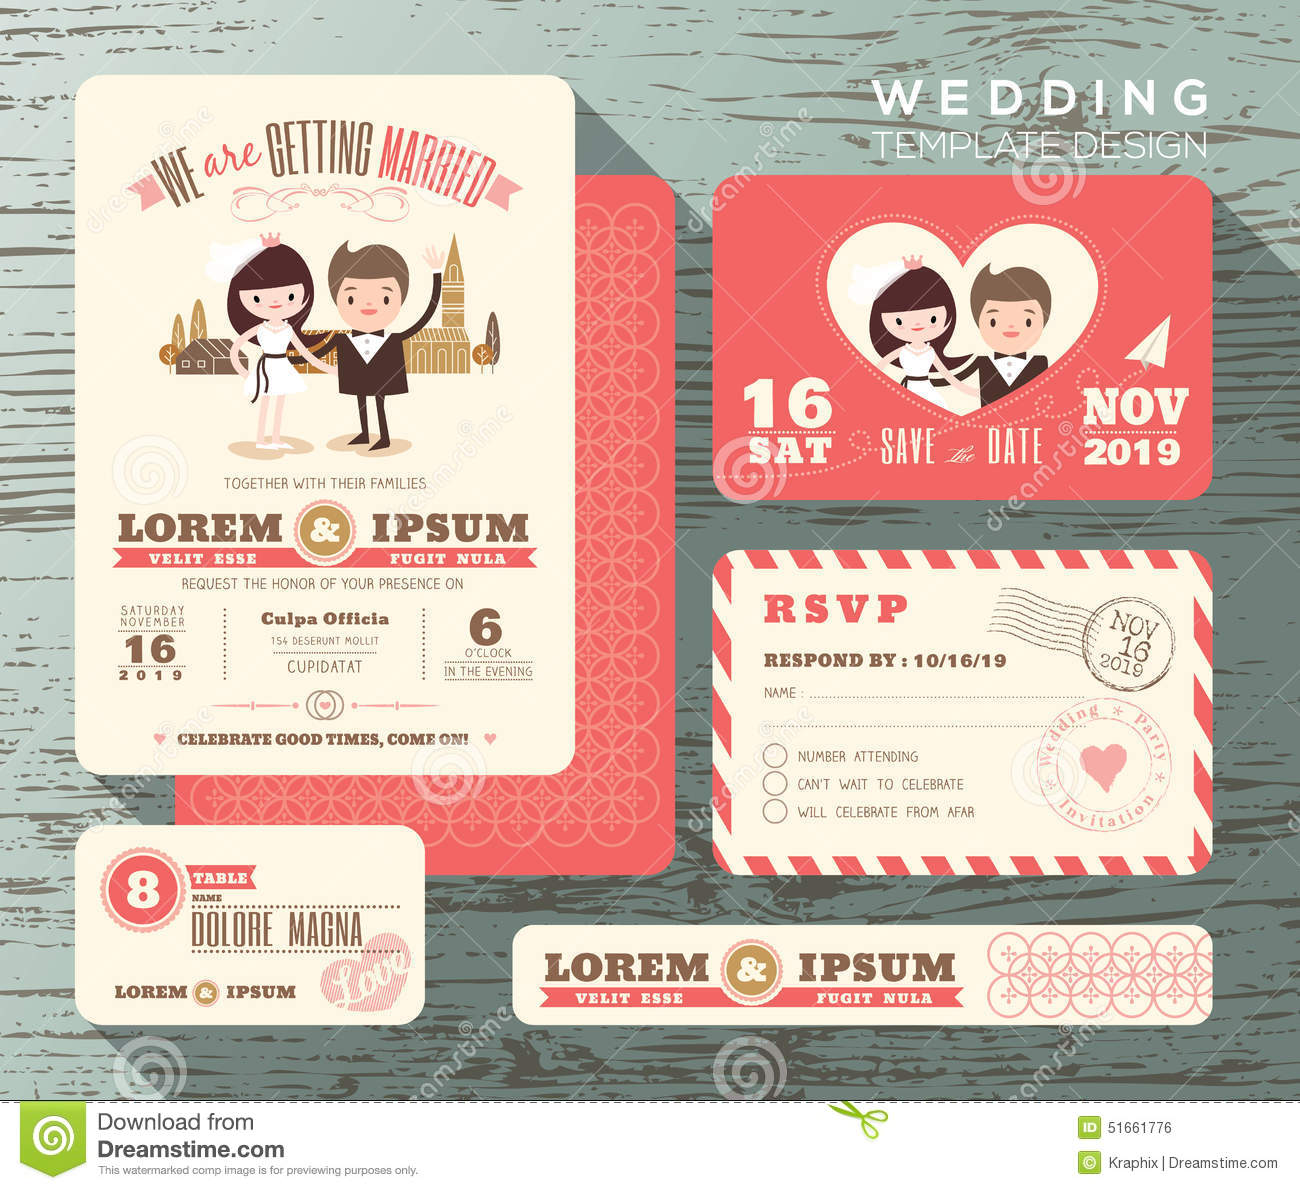 Cute groom and bride couple wedding invitation set design template cute groom and bride couple wedding invitation set design template stopboris Image collections